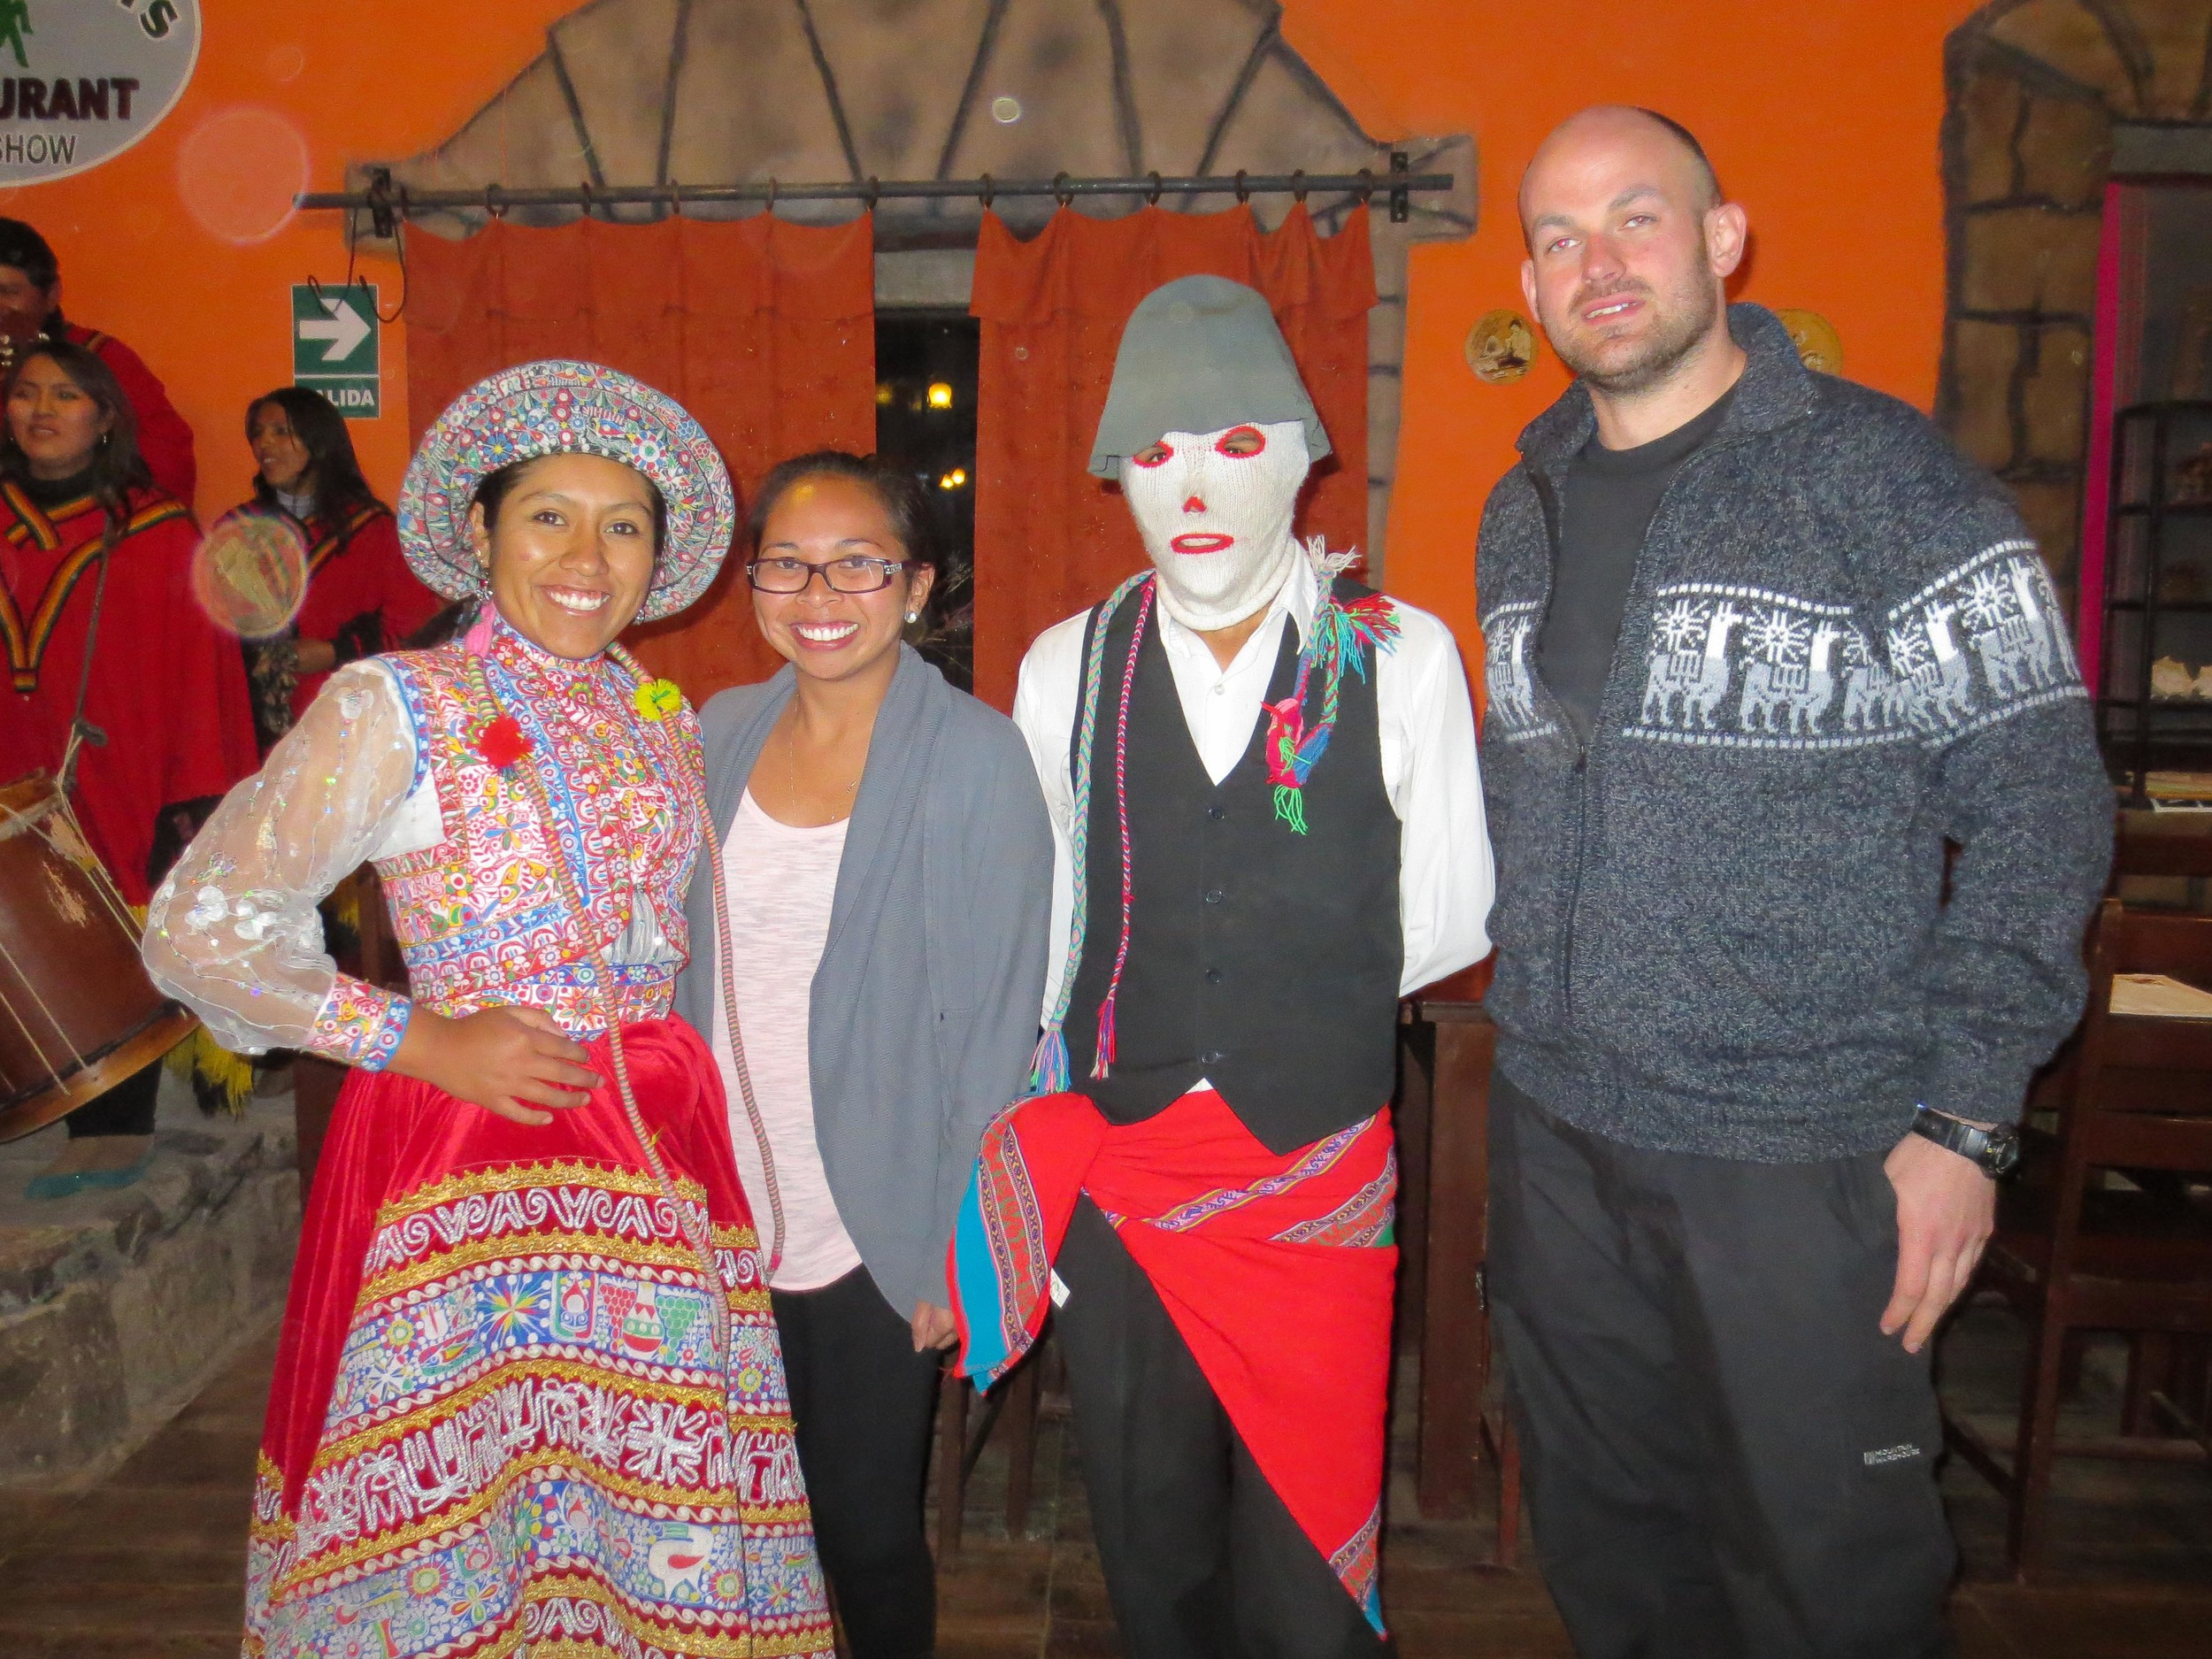 Steve and I got the opportunity to participate in the malaria dance.